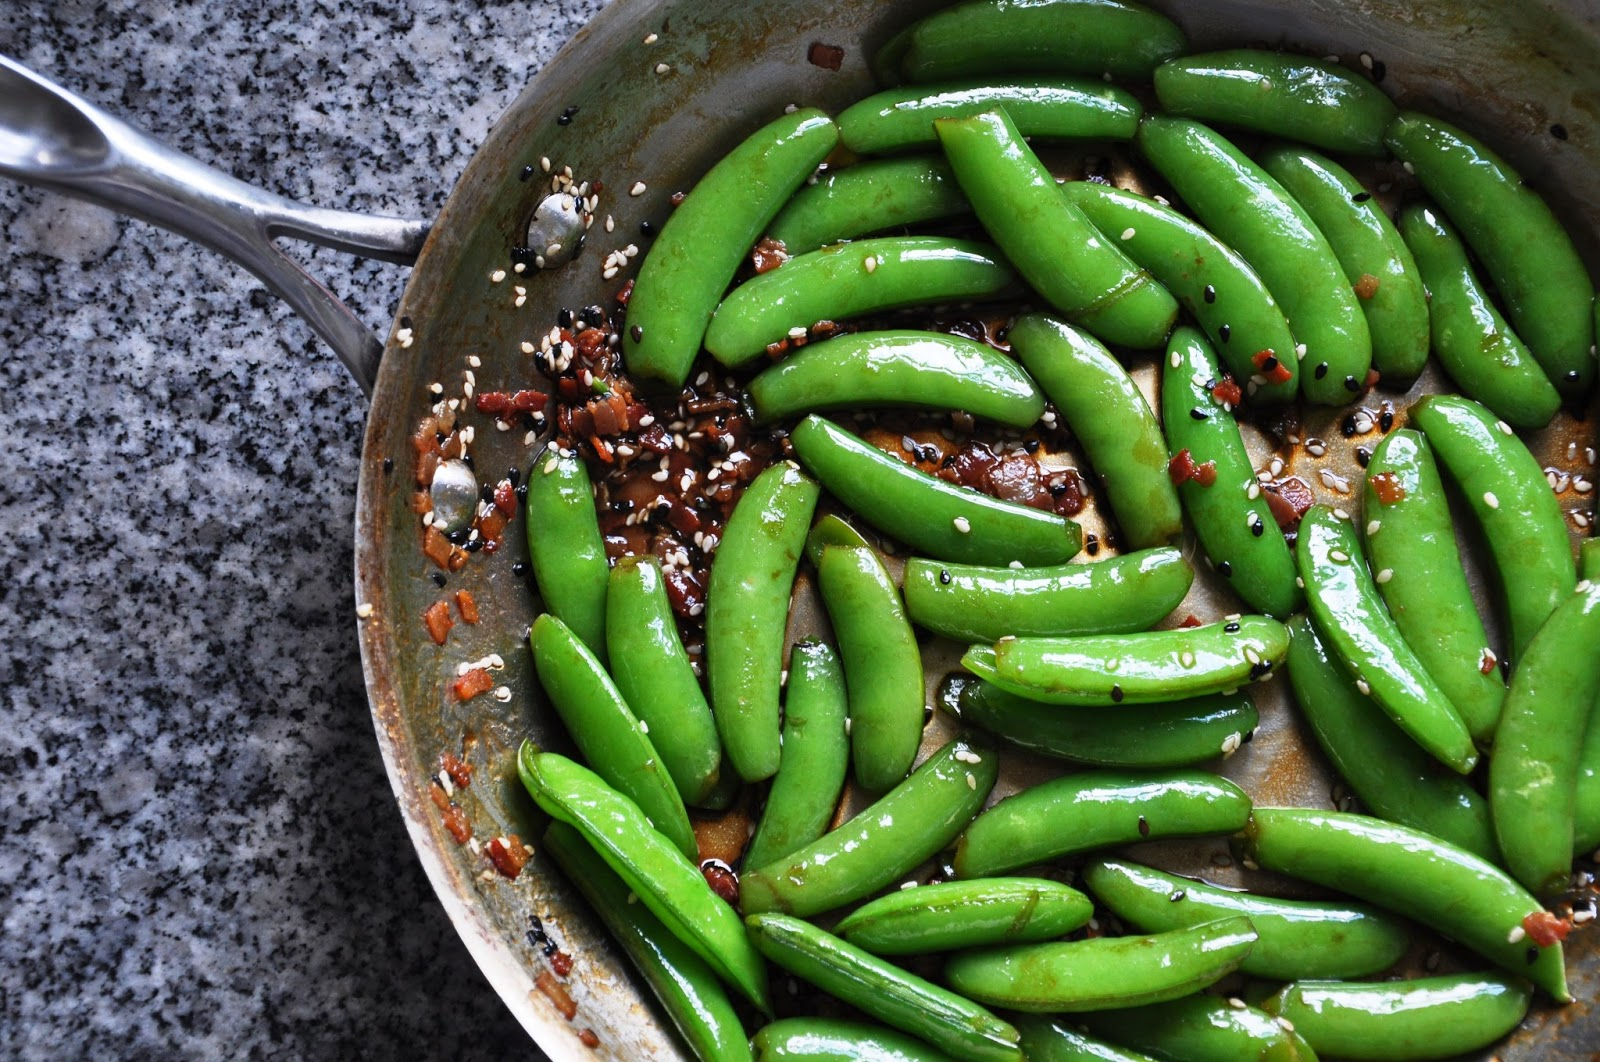 Saucy Seattleite: Sautéed Sugar Snap Peas with Bacon & Black Vinegar